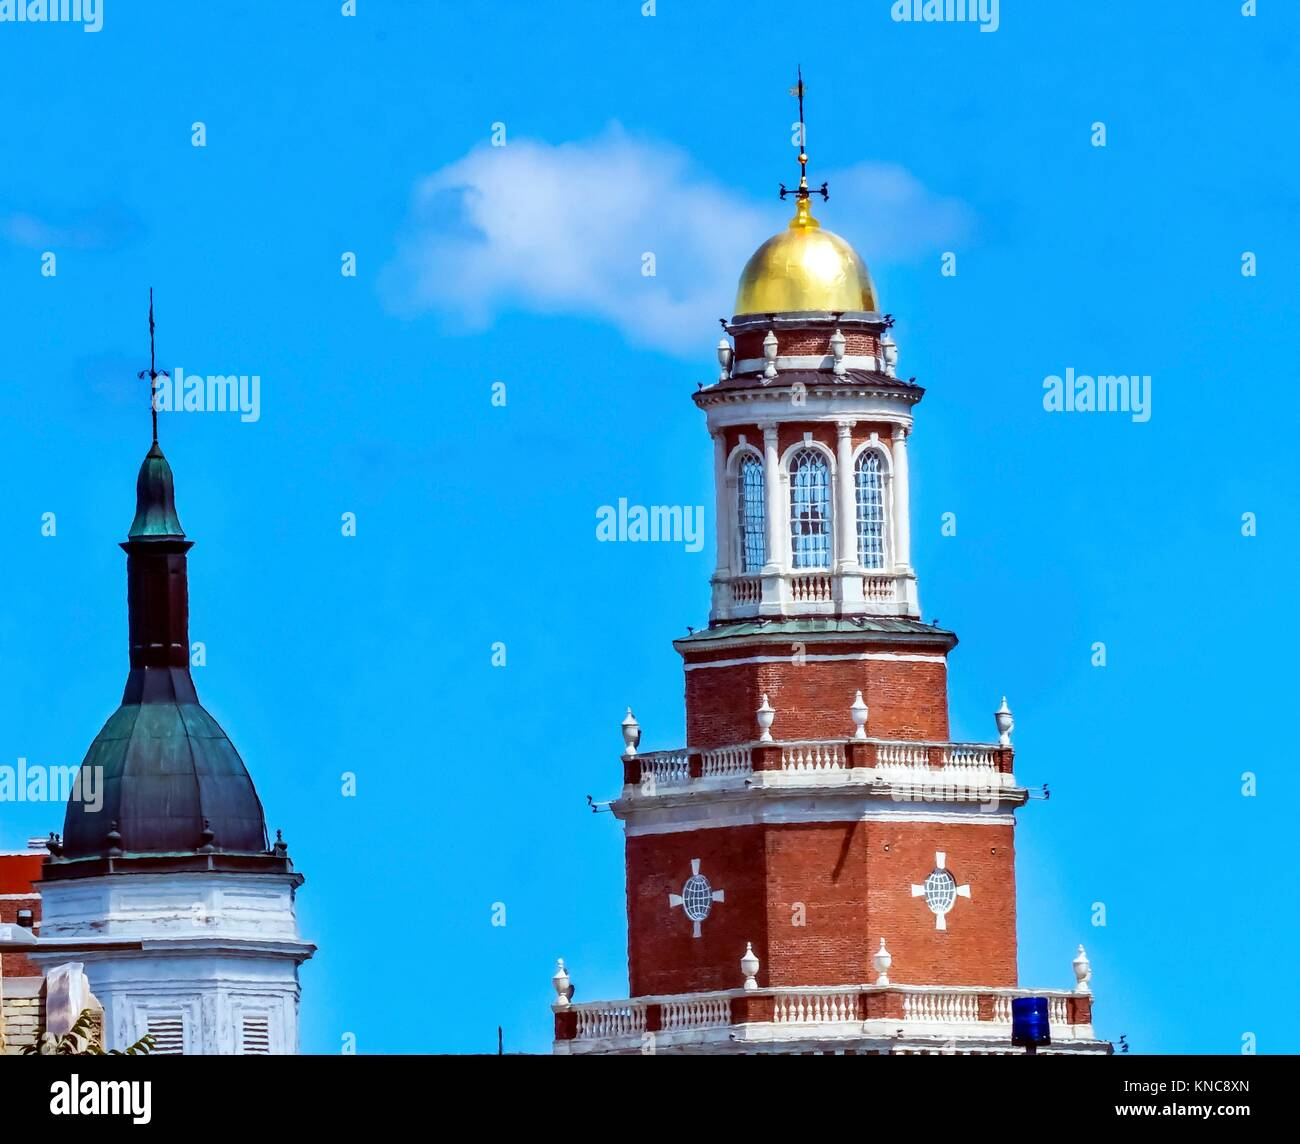 Steeples Golden Cupola Dome Clock Tower Residential College Old Campus Yale University New Haven Connecticut. - Stock Image